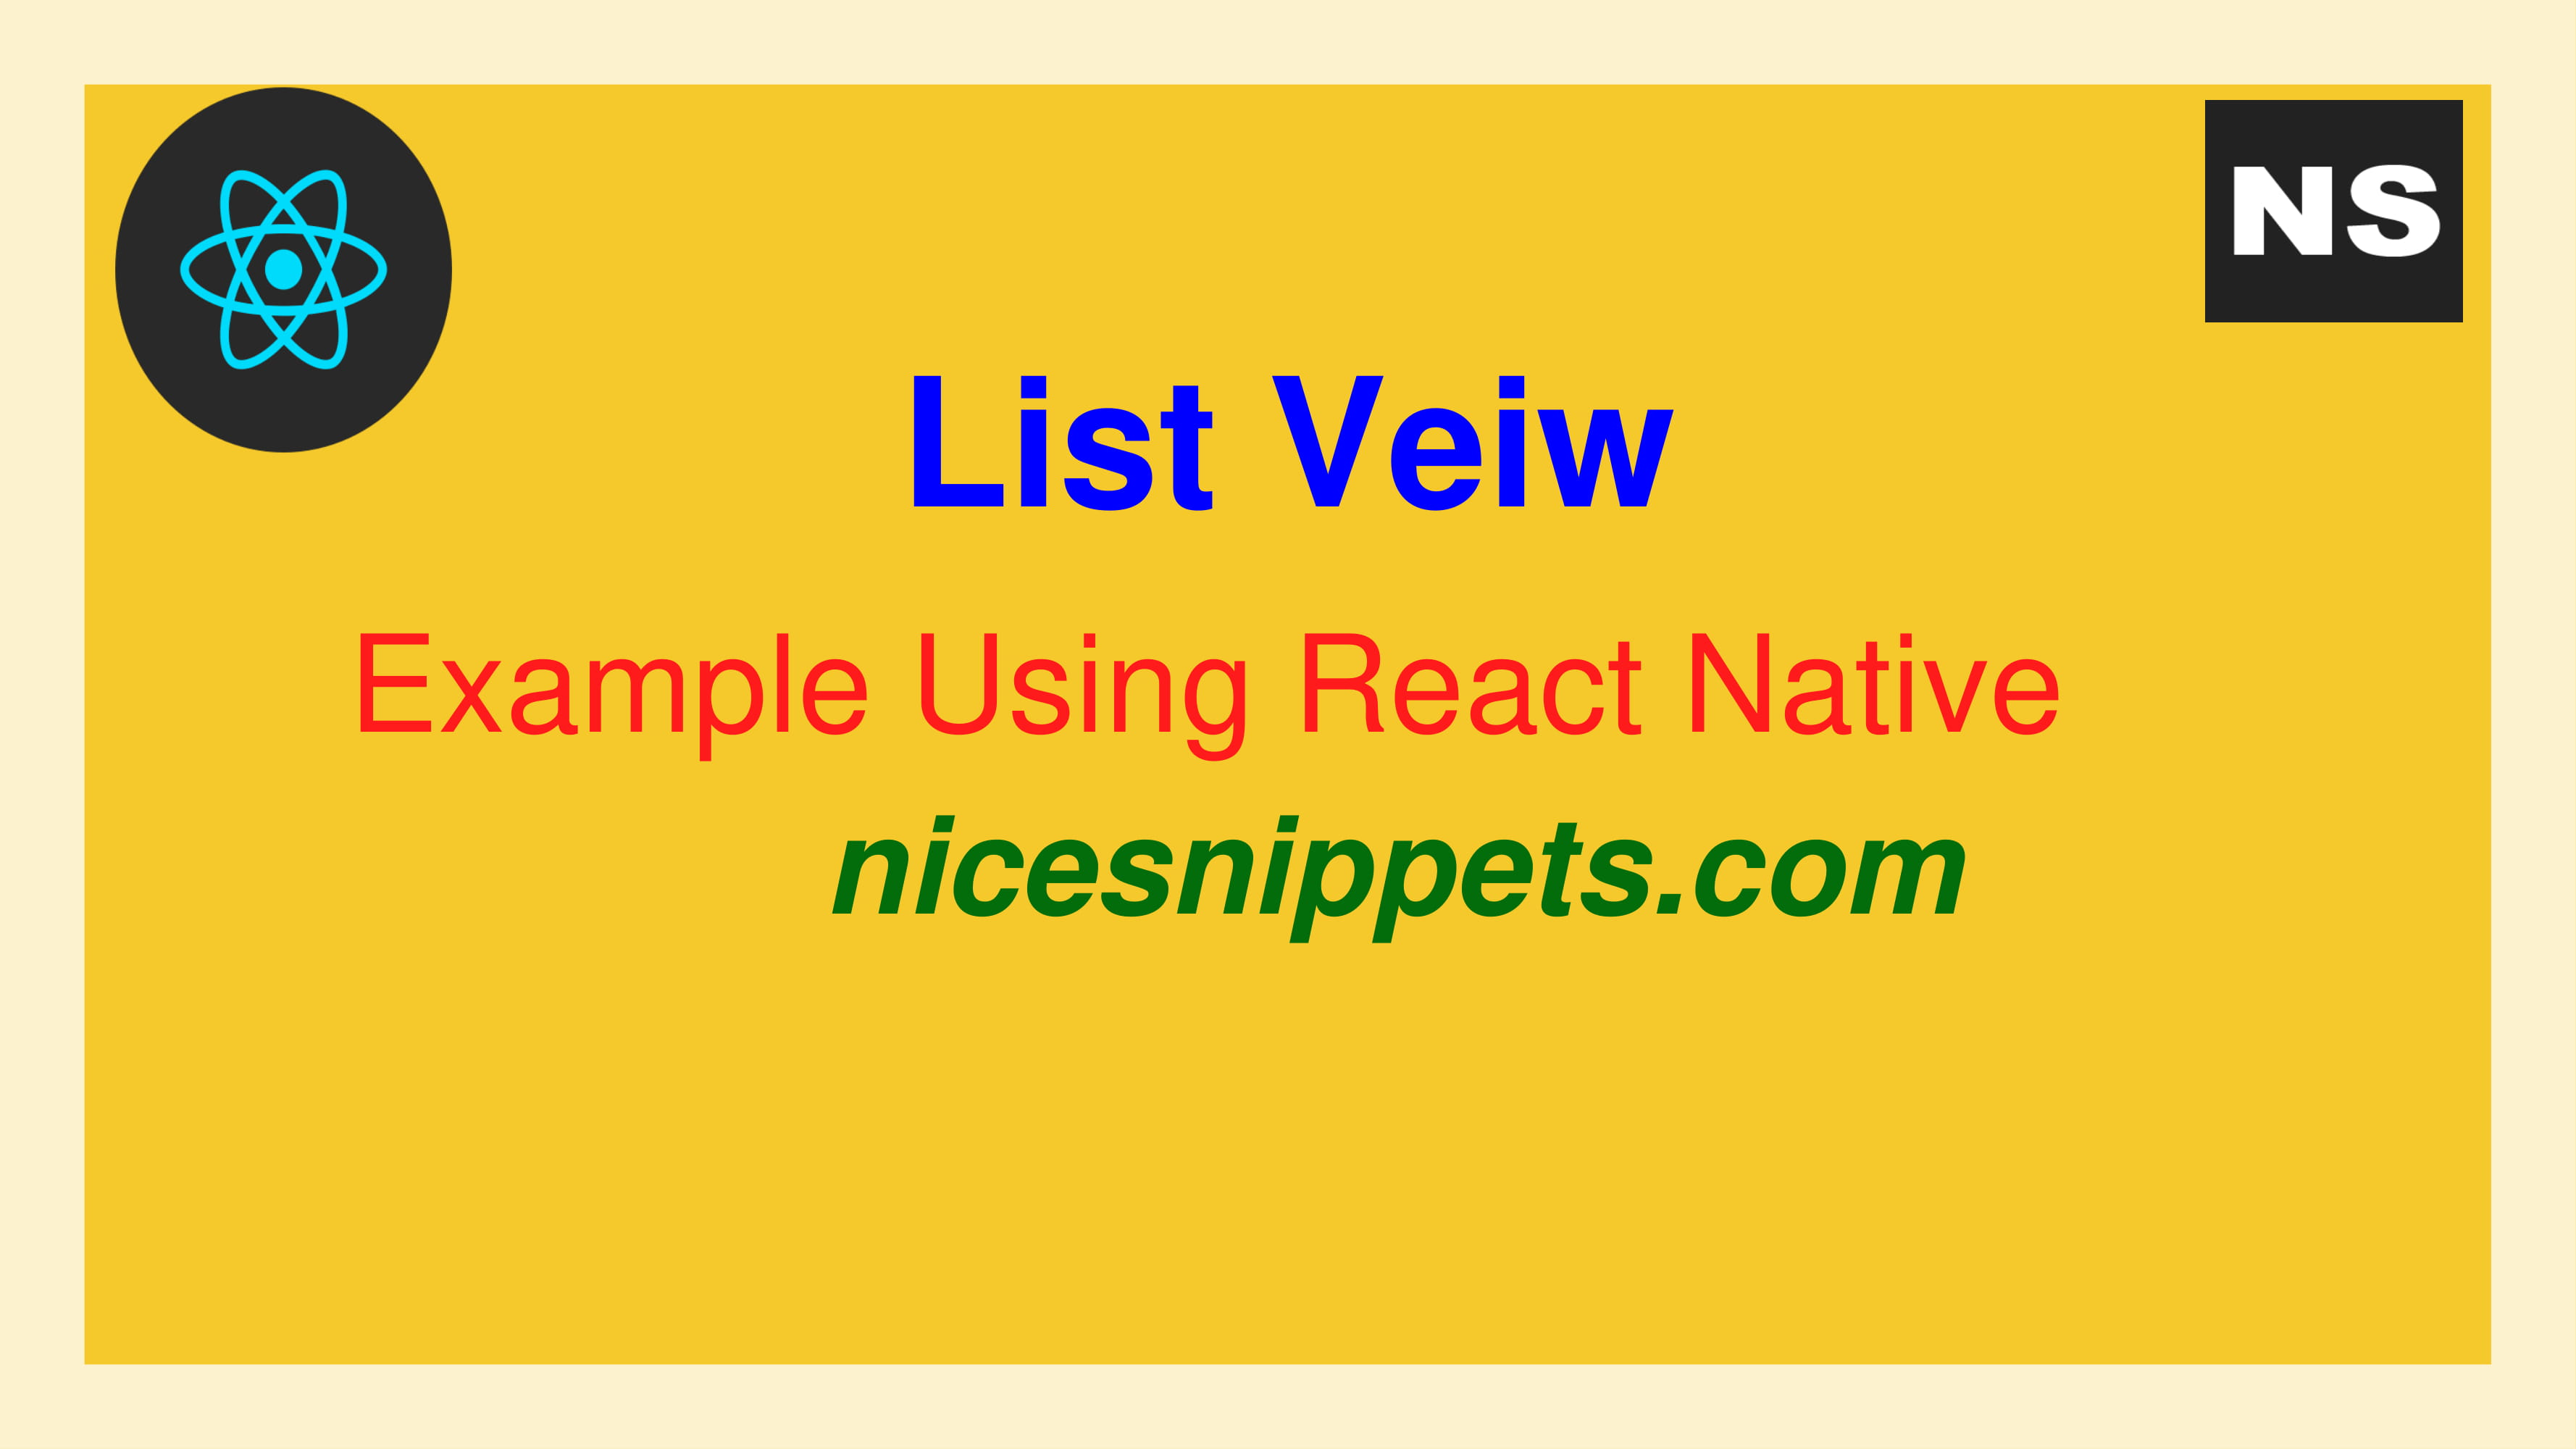 List View Example Using React Native